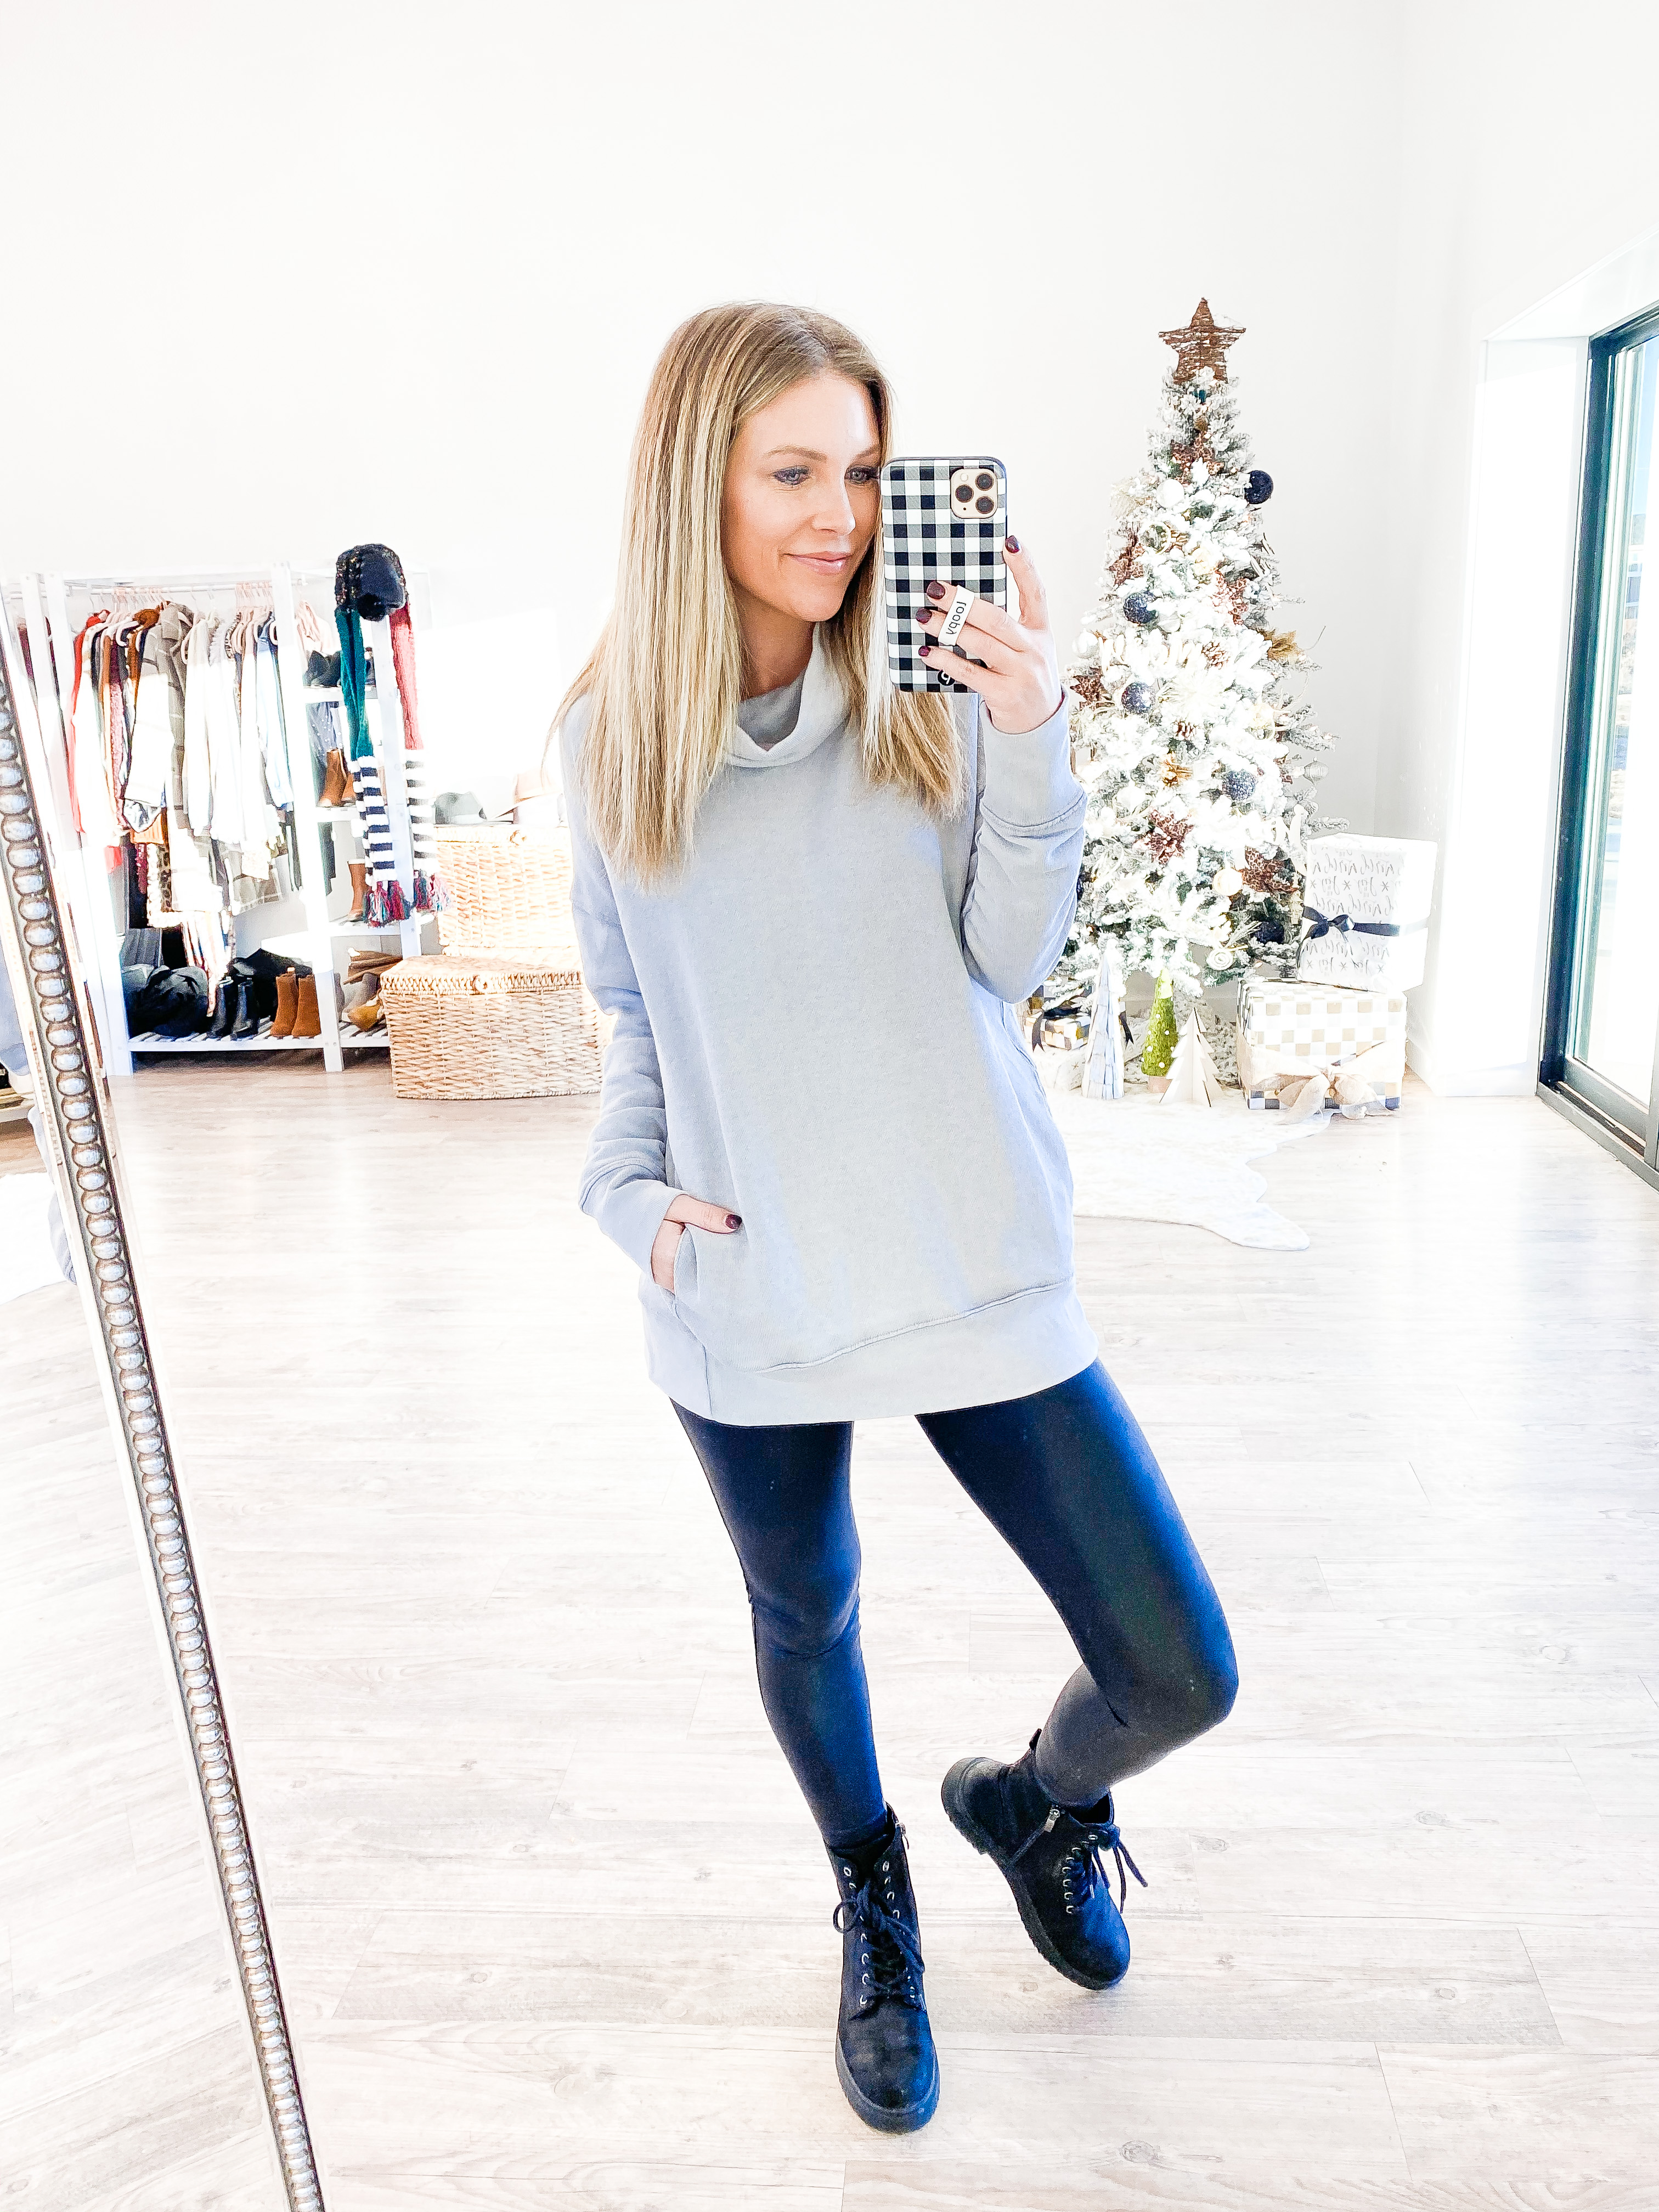 Life and Style Blogger Ashlee Nichols shares her Walmart winter fashion haul. With everyday looks that are comfortable and affordable.